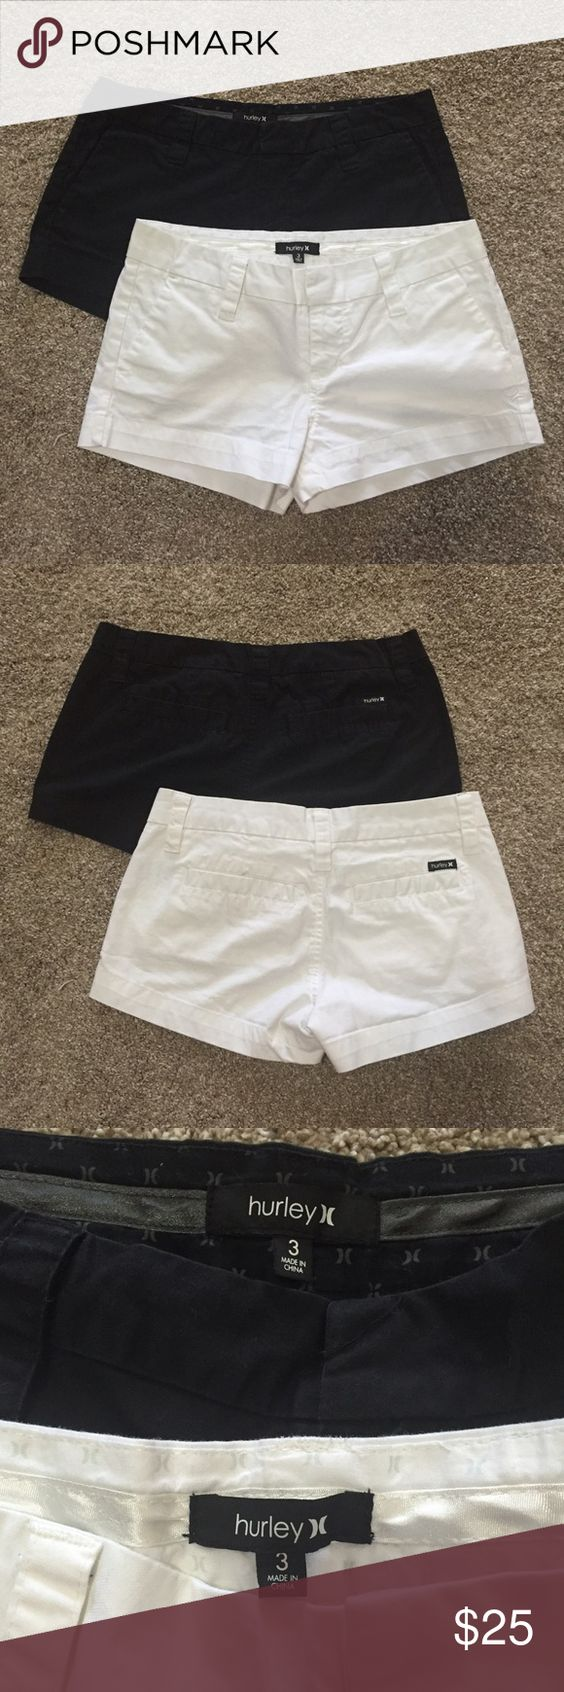 Hurley shorts Black and white shorts, brand new condition. Smoke free home. Would like to sell as set, but willing to break up. Hurley Shorts